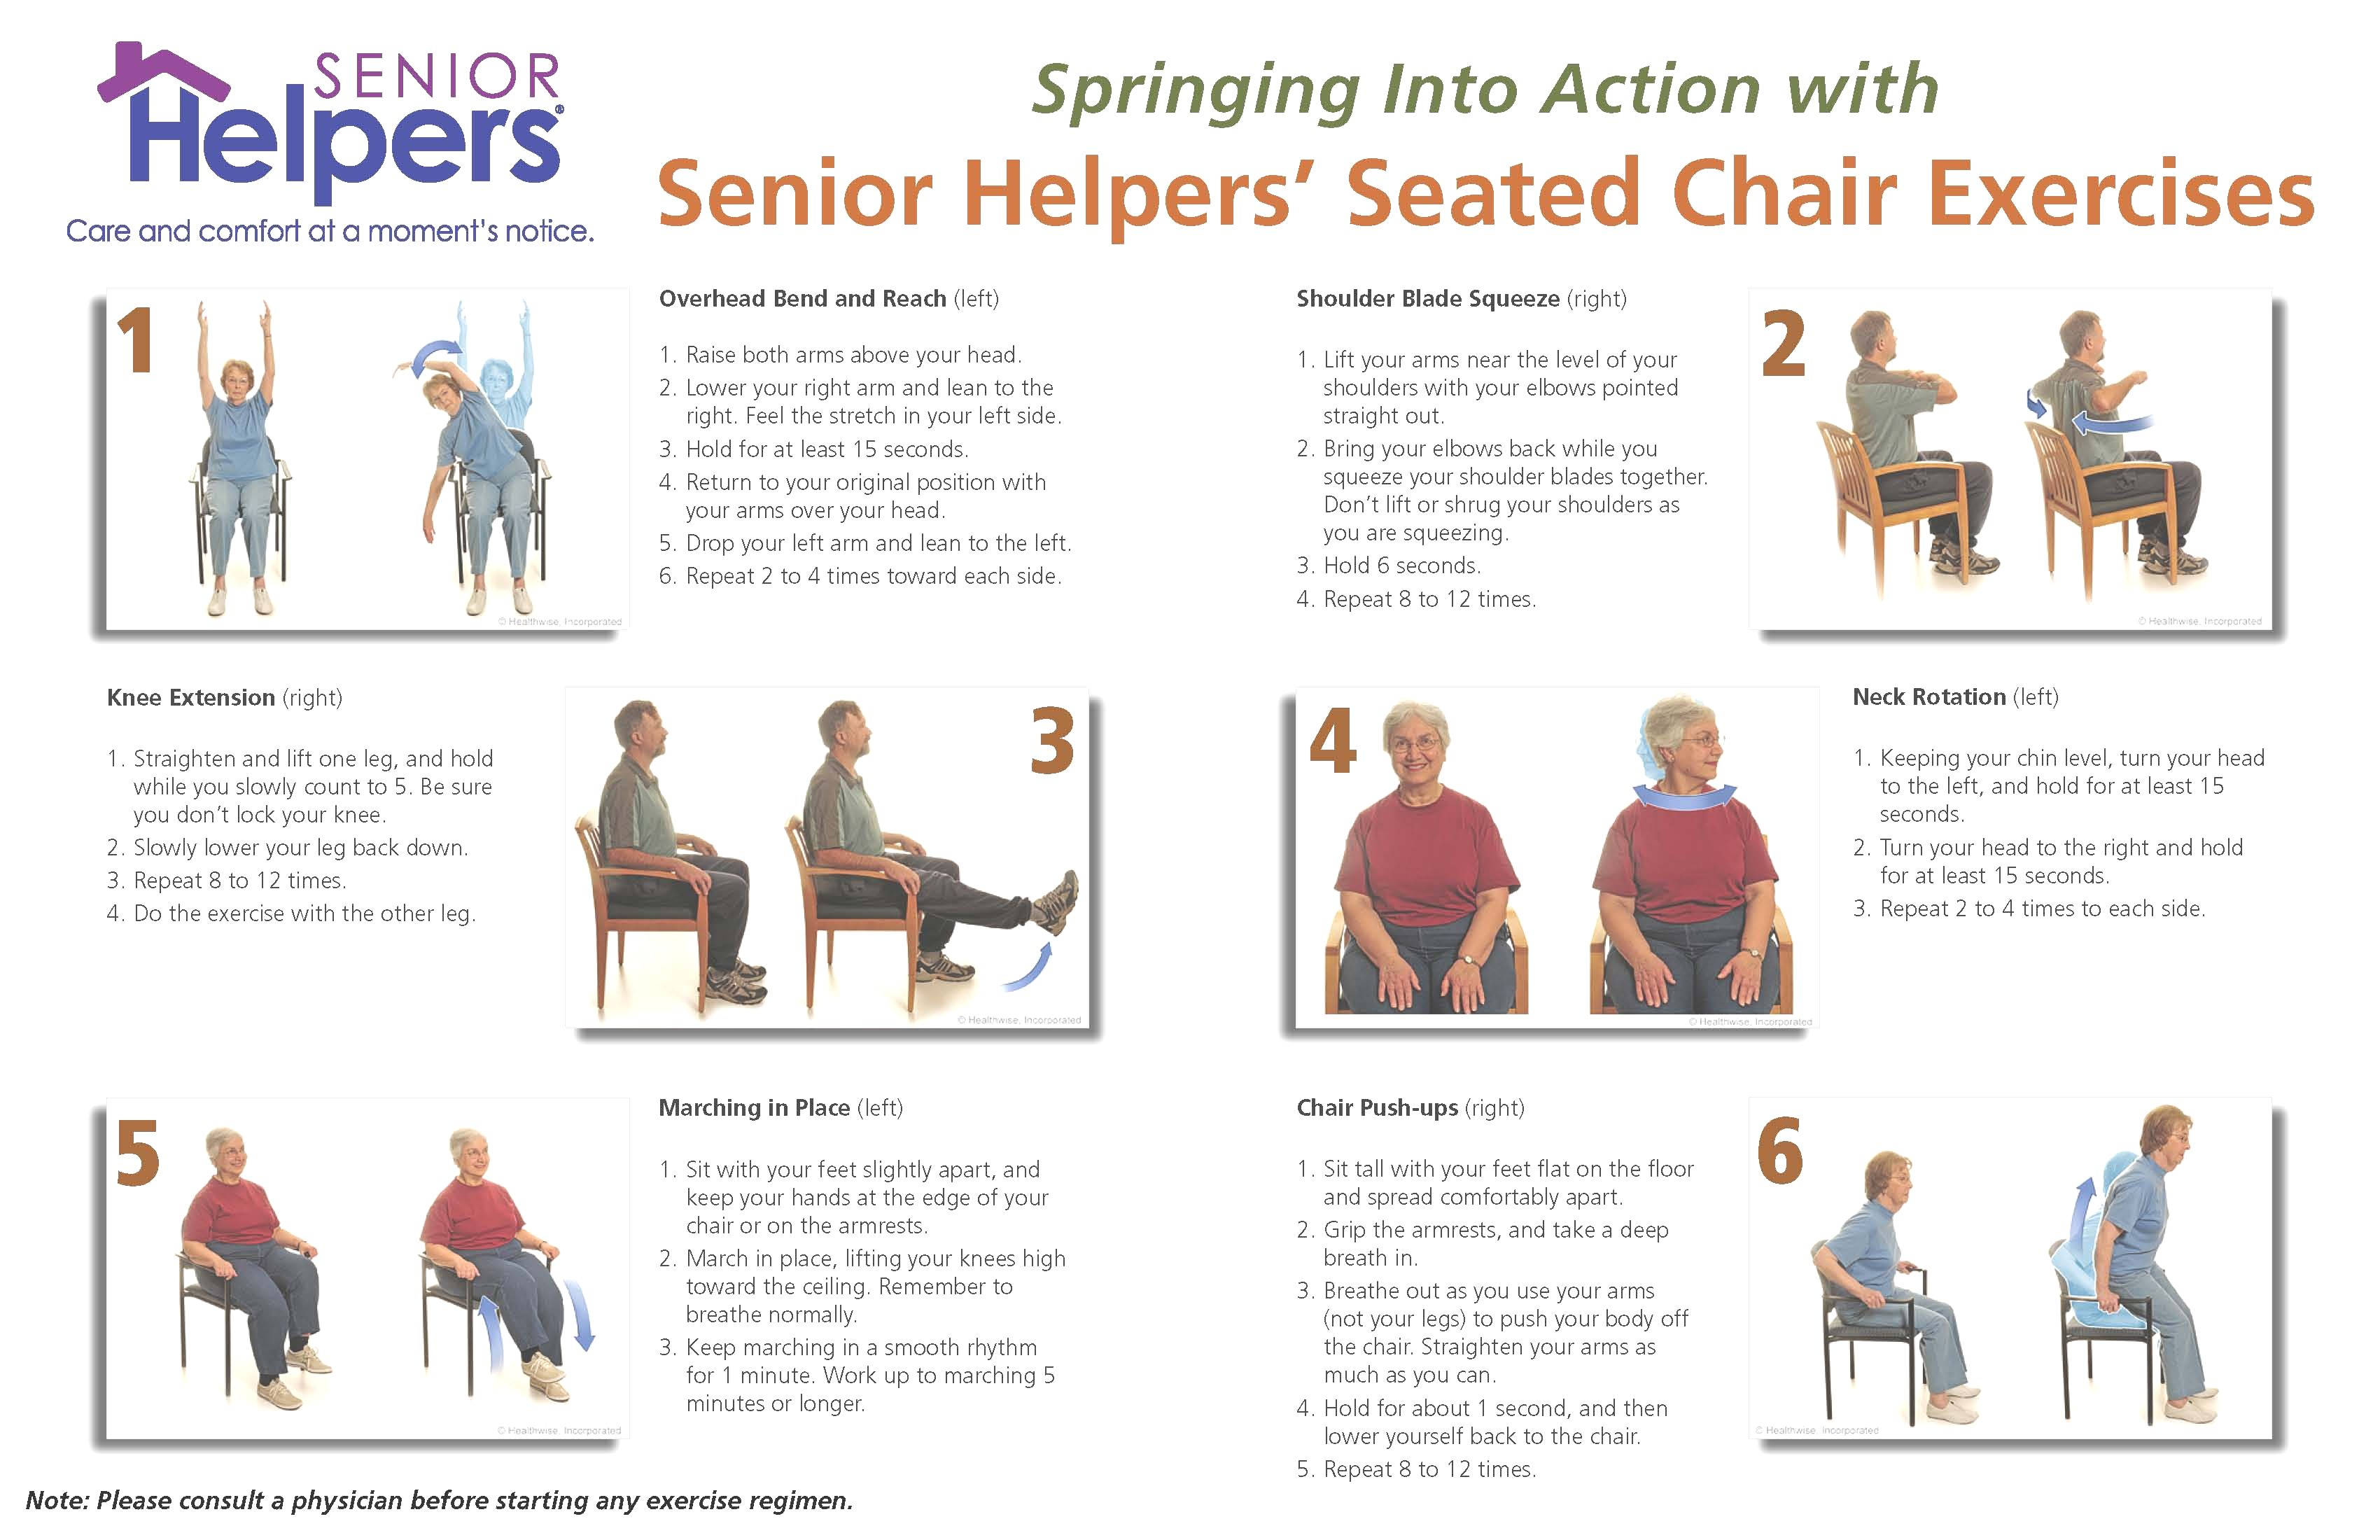 chair exercises for seniors pdf standing office chairs pin on easy seated at home workouts physical therapy yoga props senior fitness